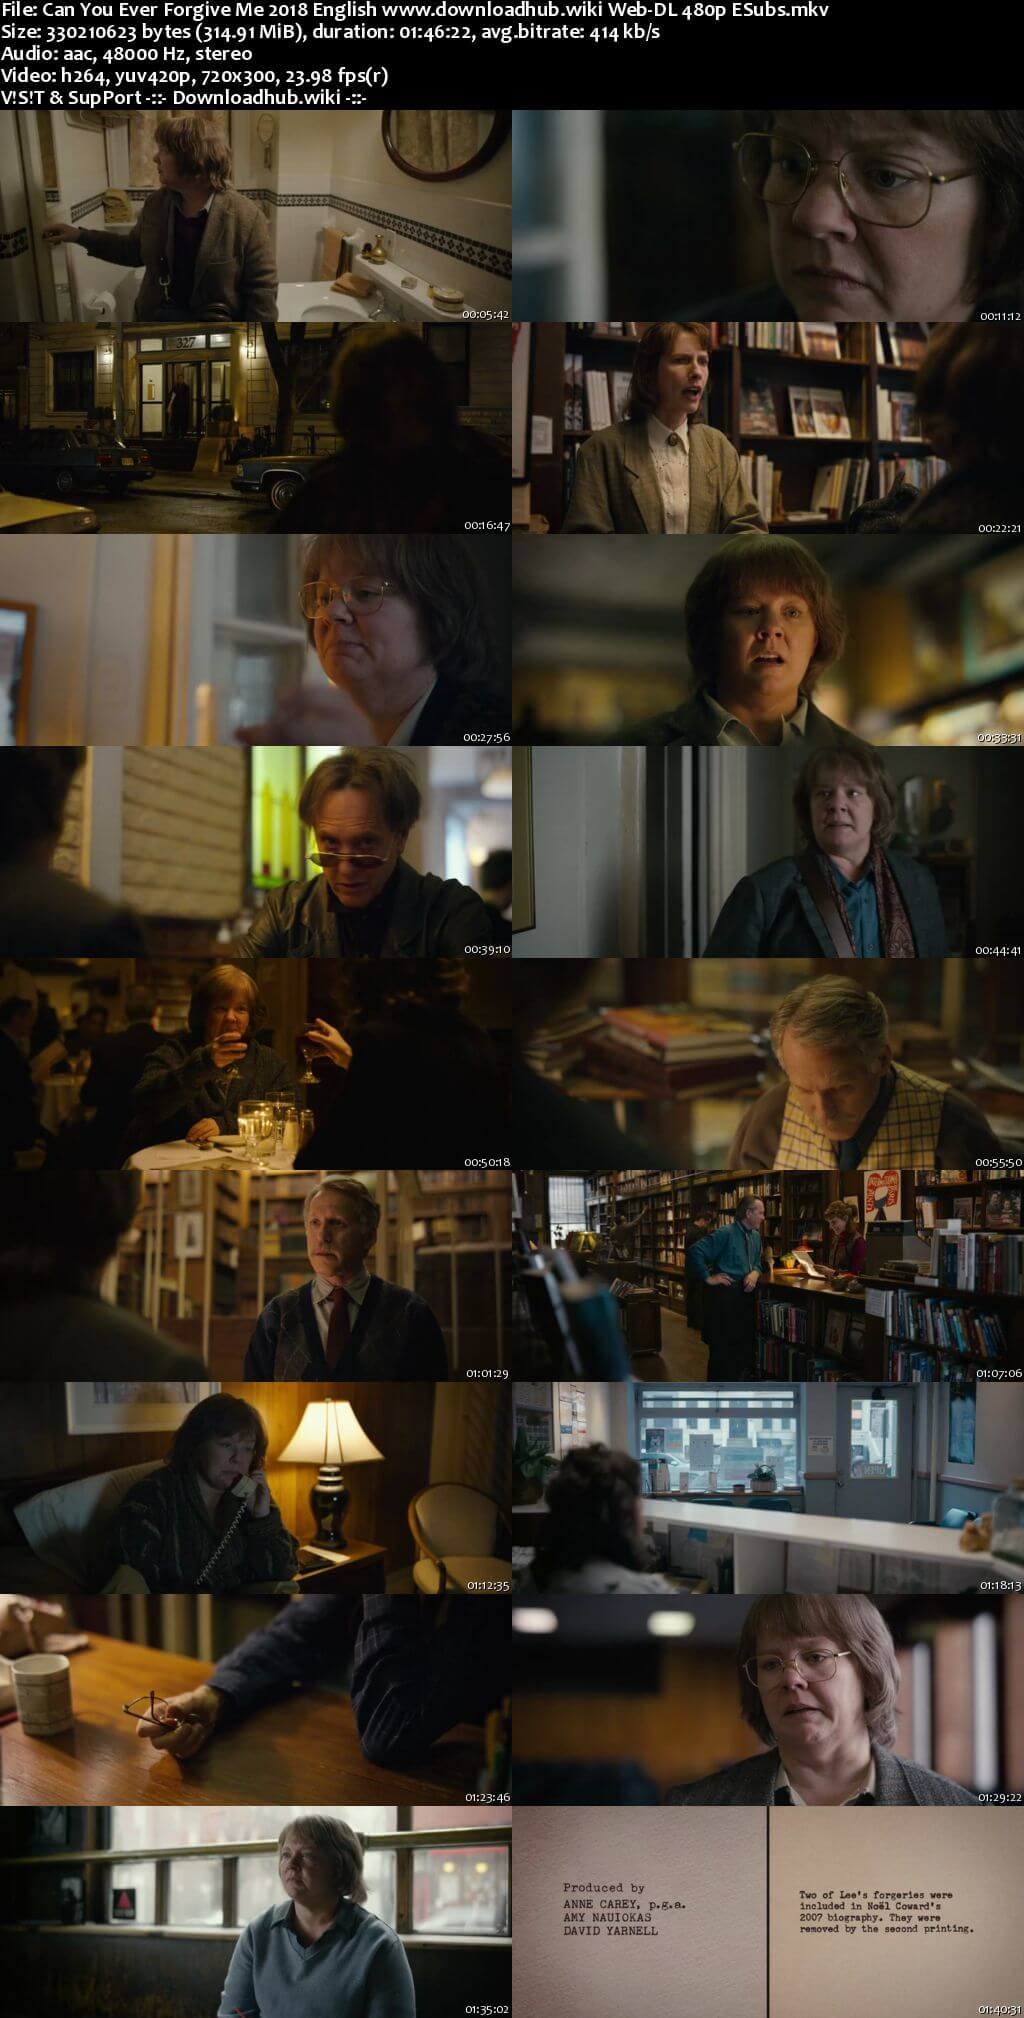 Can You Ever Forgive Me 2018 English 300MB Web-DL 480p ESubs